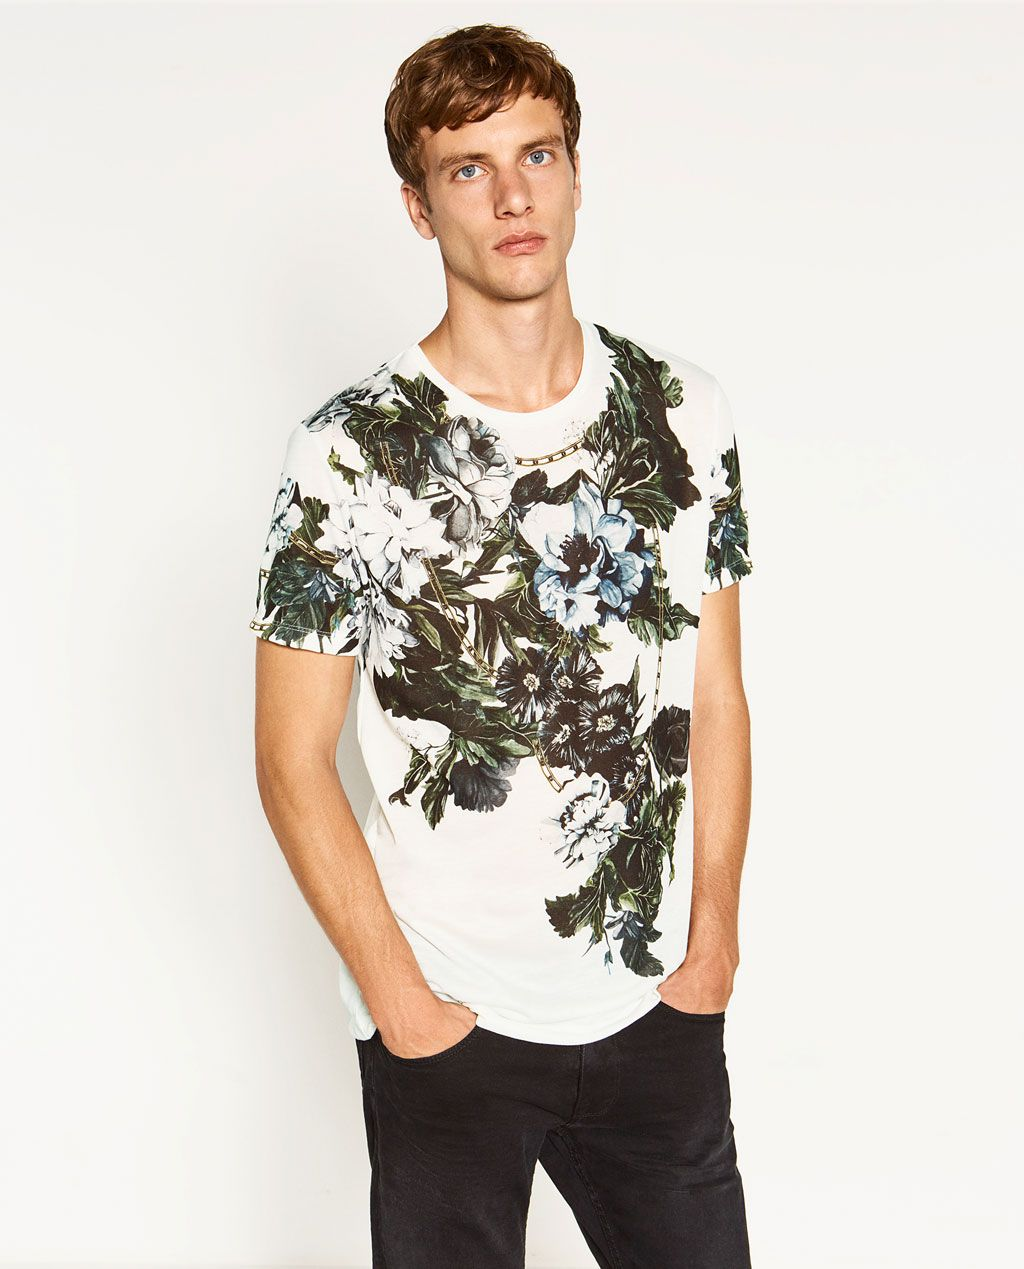 aba58ce84783 ZARA - MAN - FLOWERS T-SHIRT | Fashion | Mens tops, Fashion, Mens ...